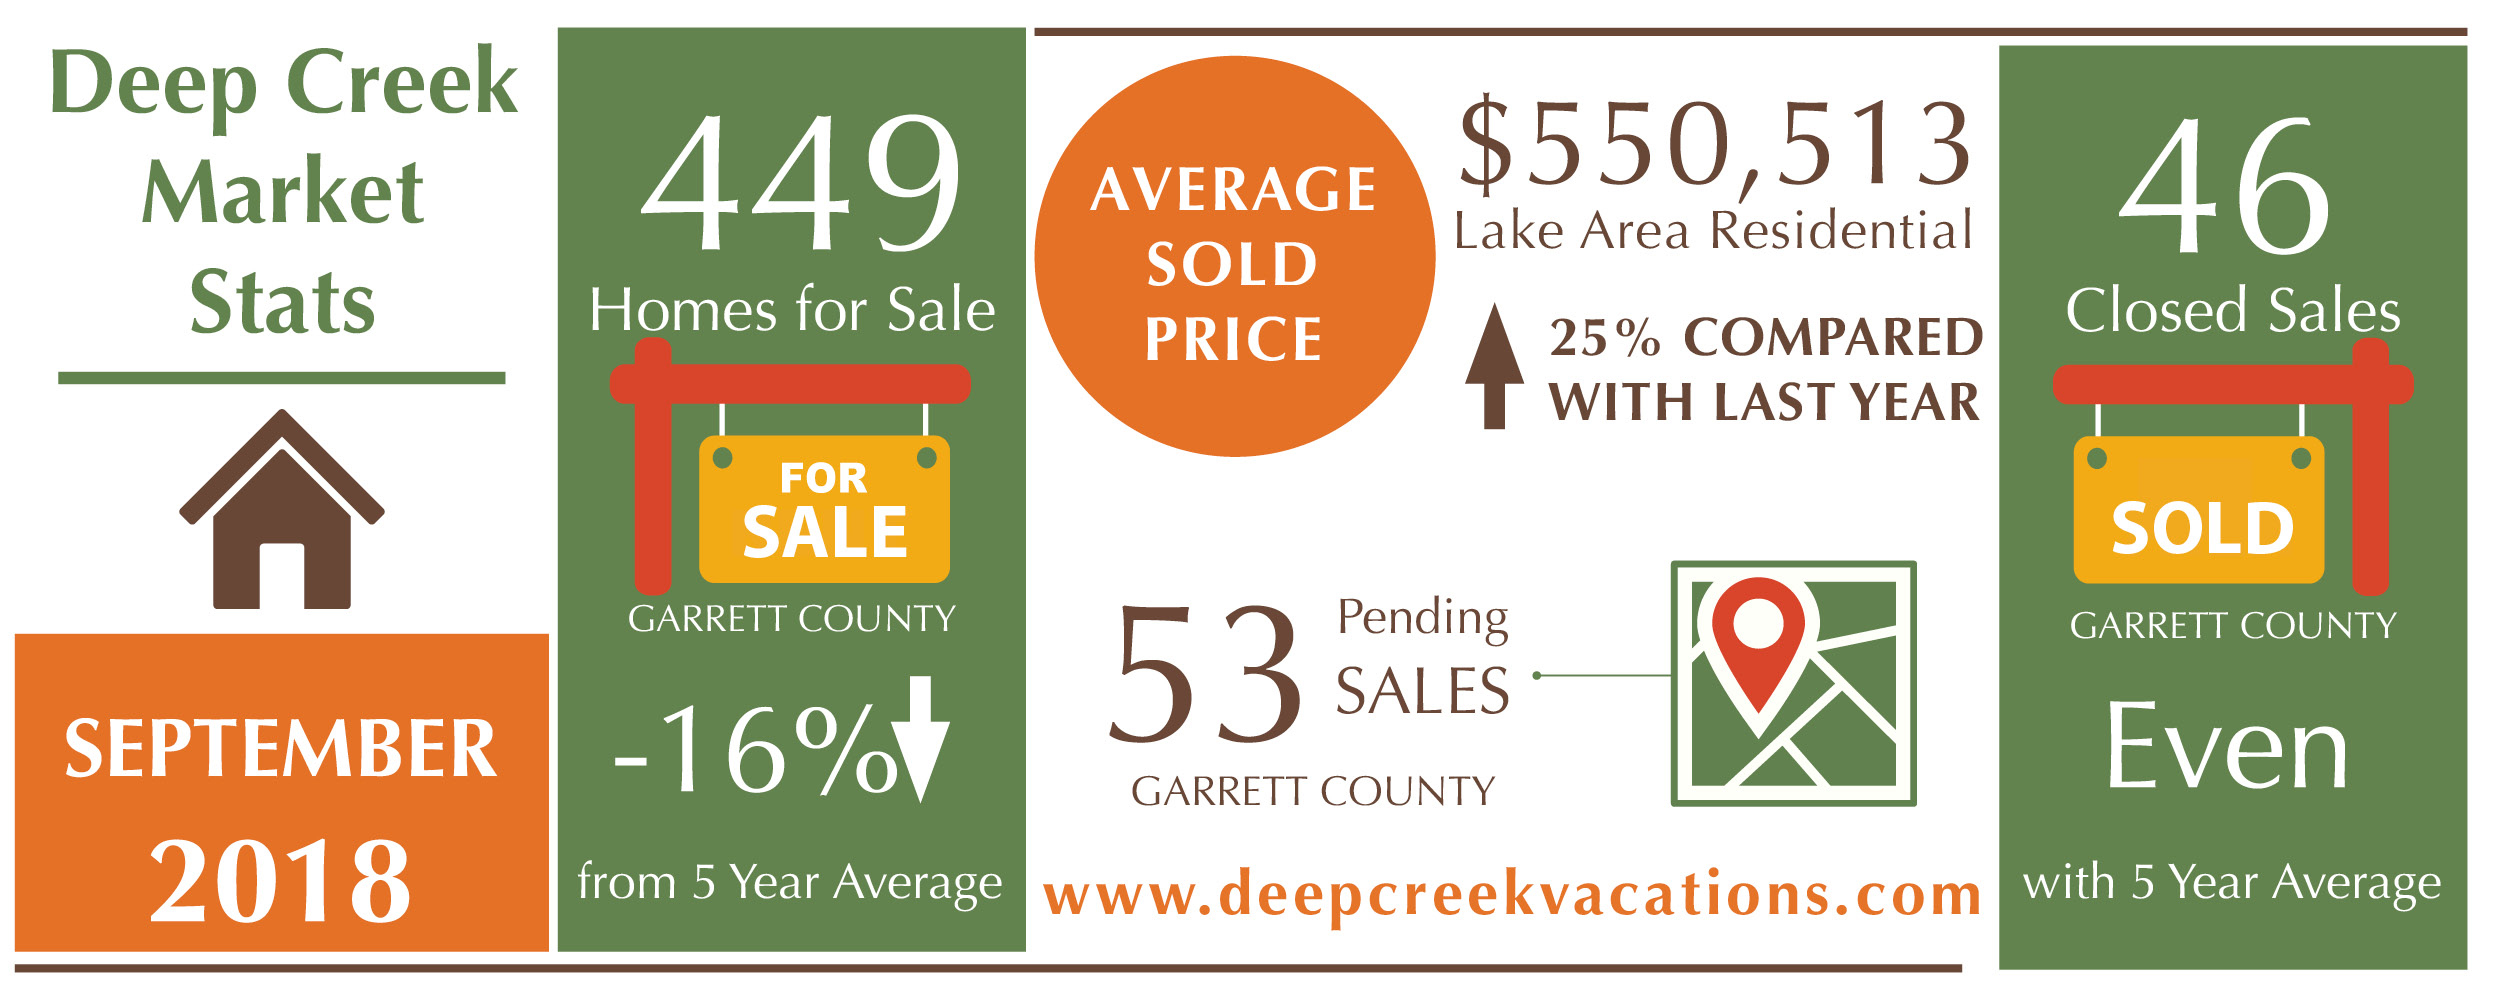 Deep Creek Lake Real Estate News October 2018